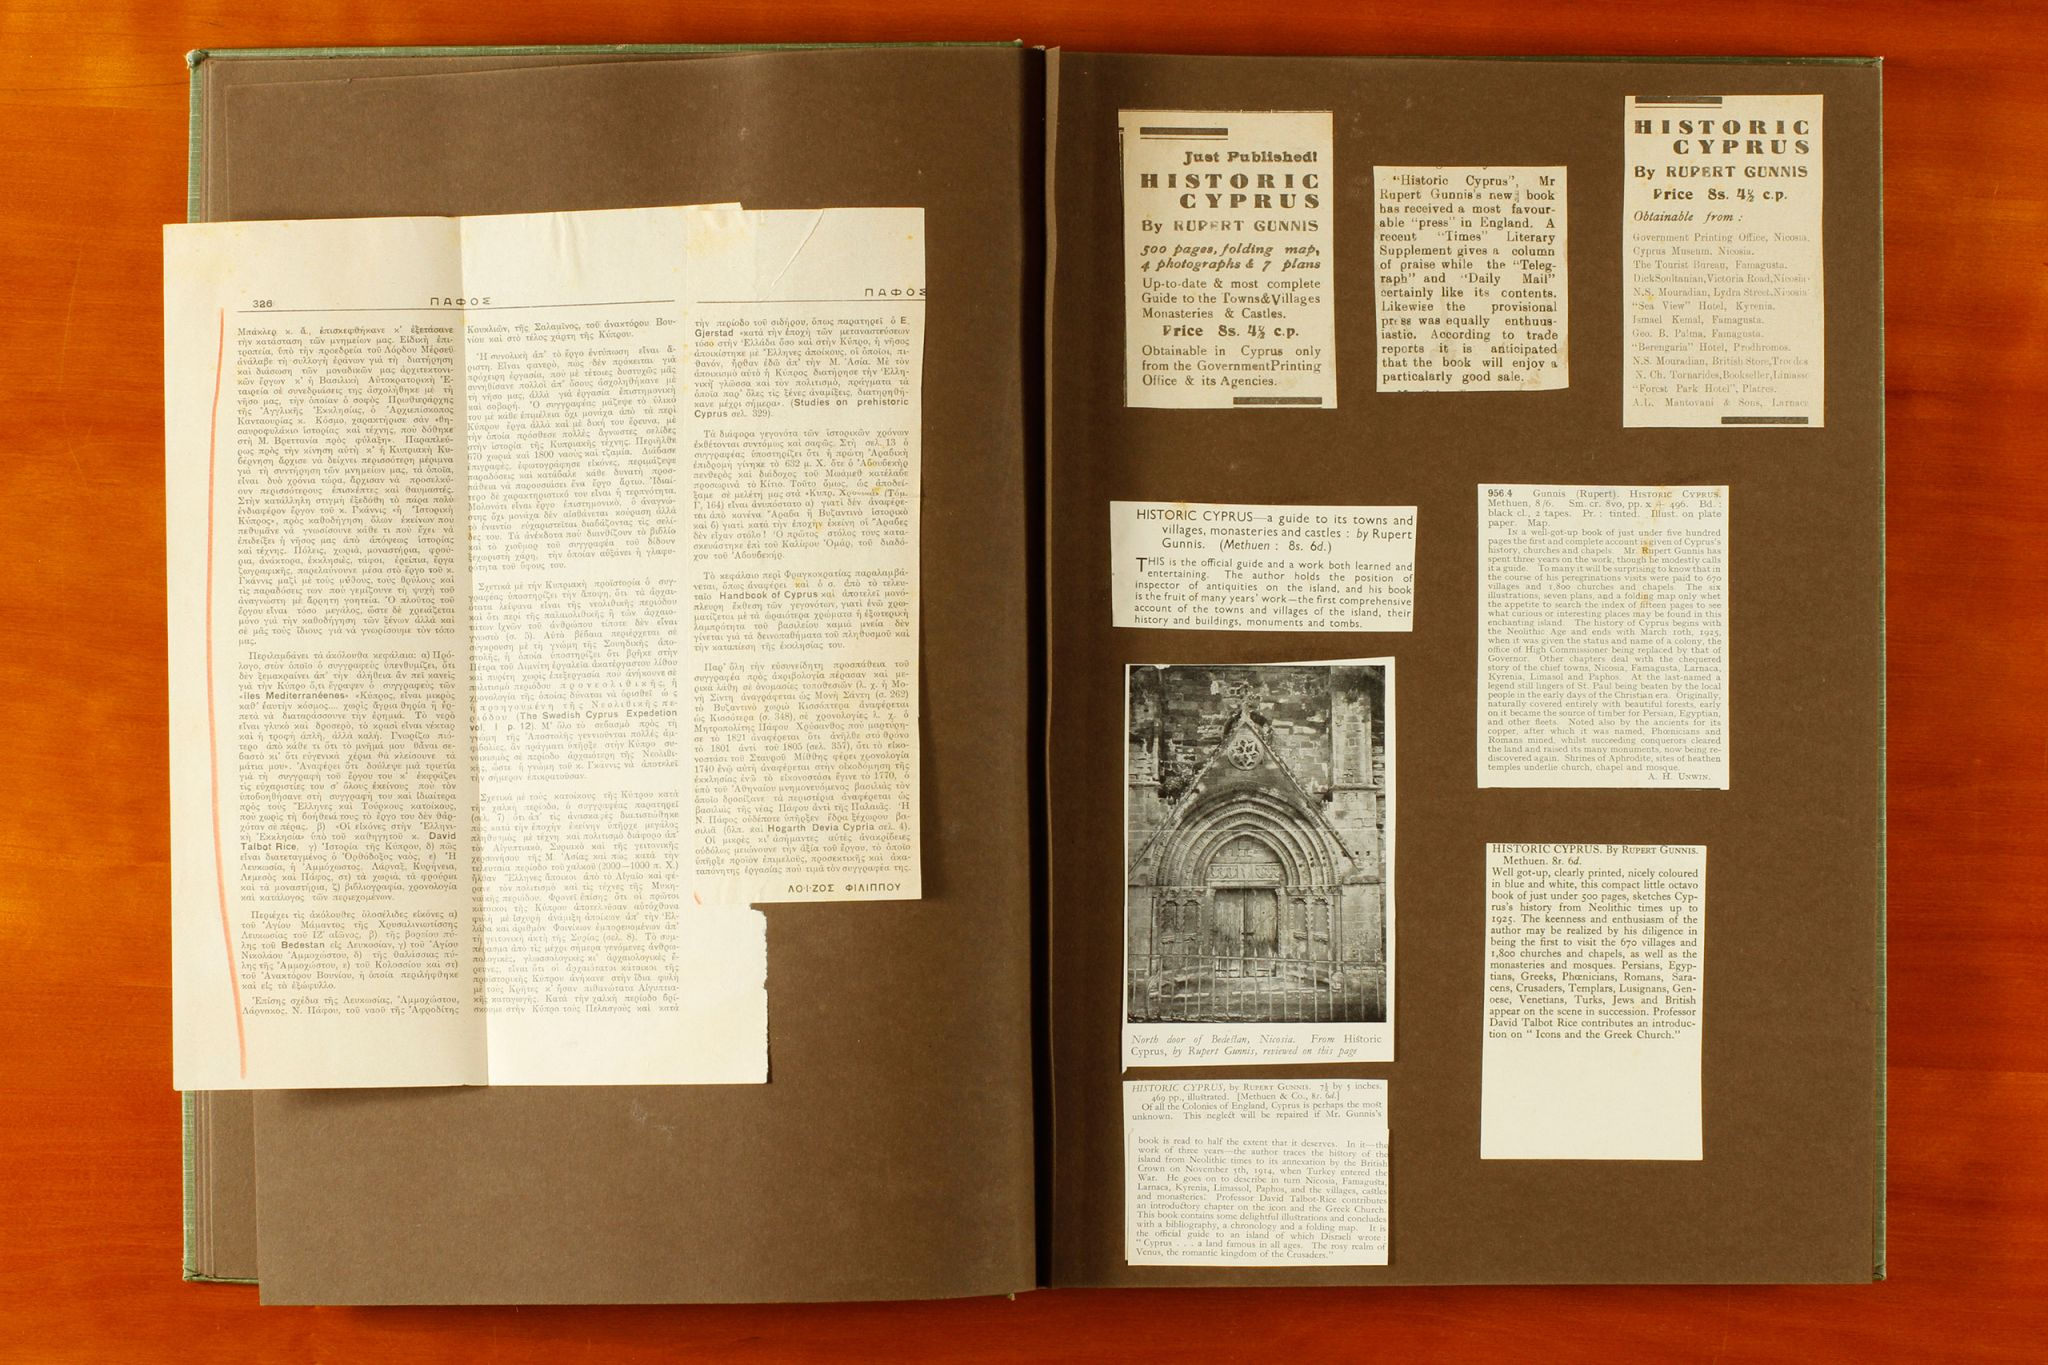 A page from Rupert Gunnis' scrapbook 'Historic Cyprus' showing press cuttings related to sculpture